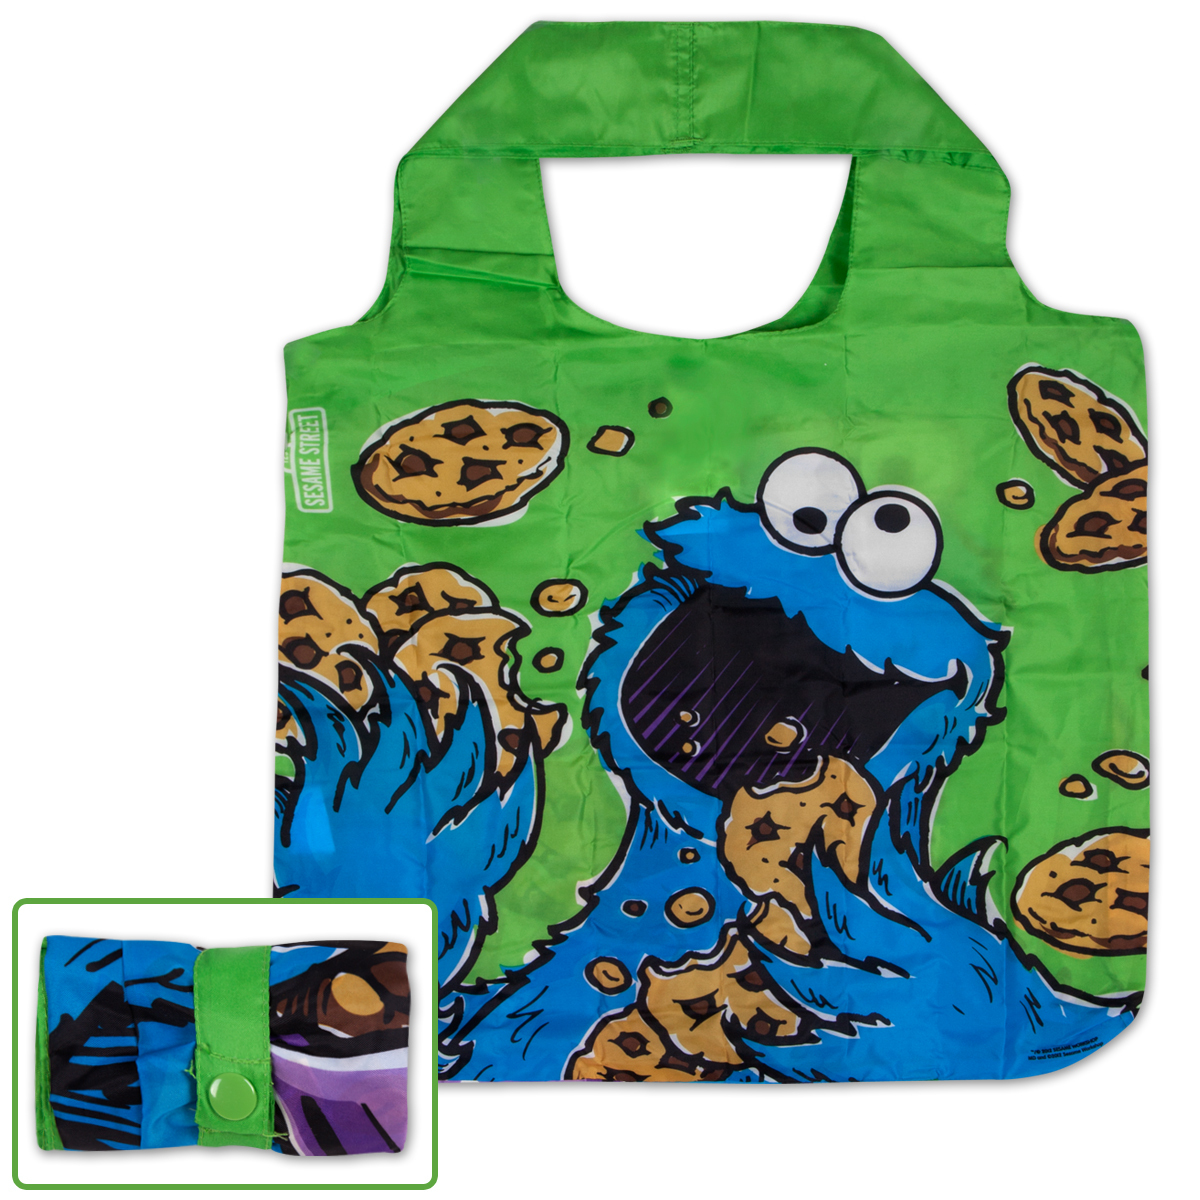 Cookie Monster Green Reusable Tote